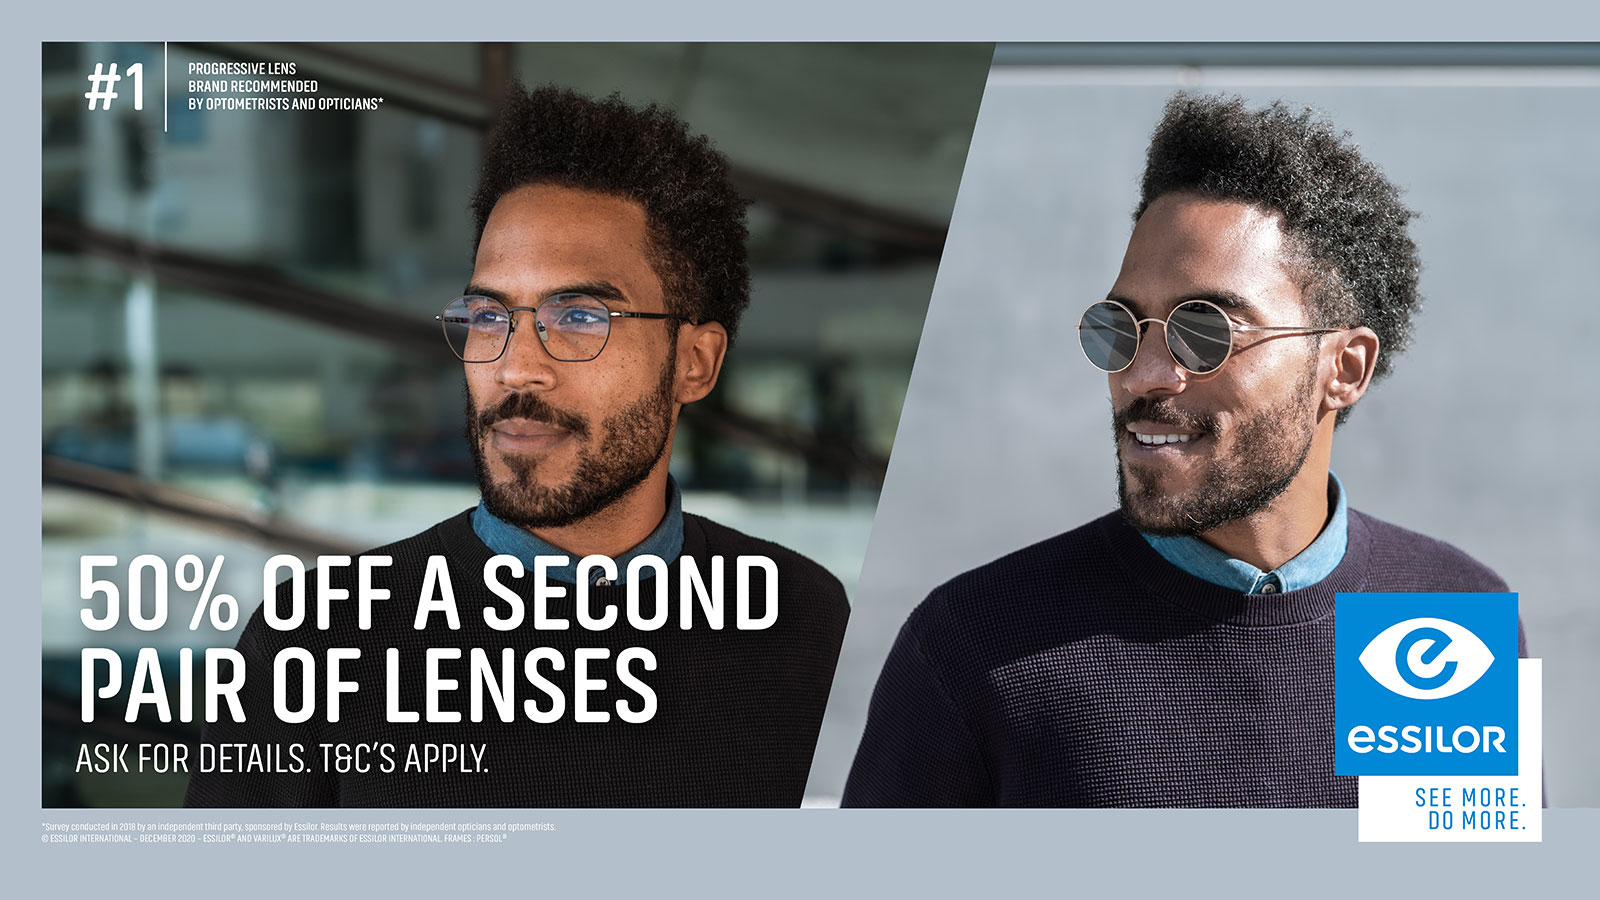 City Opticians London - 50% Off A Second Pair Of Lenses